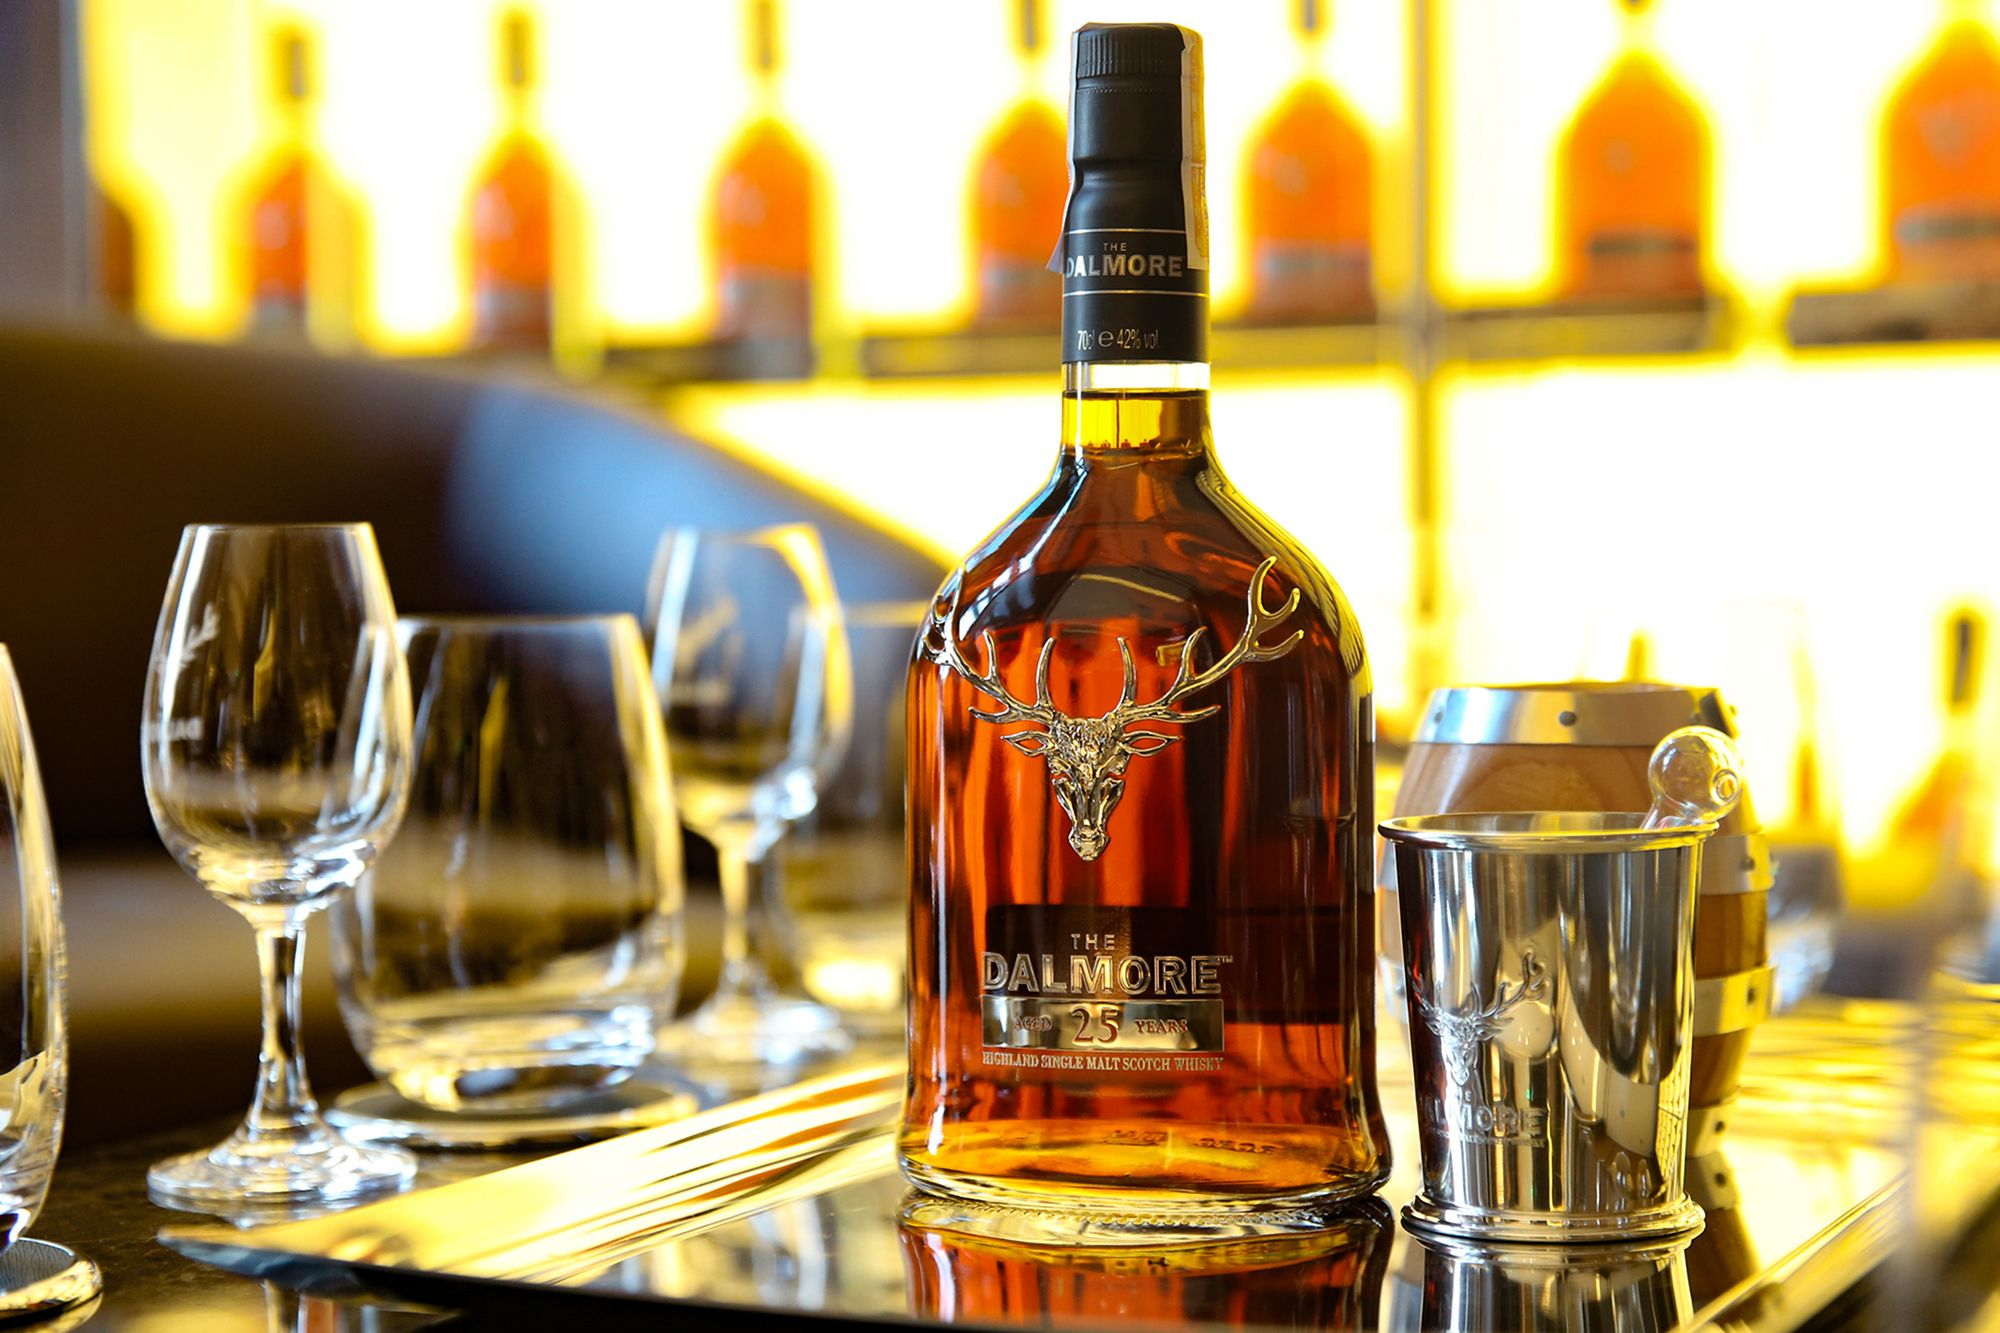 All About The Dalmore 45 Worth Php 1.3M, Now Available In The Philippines